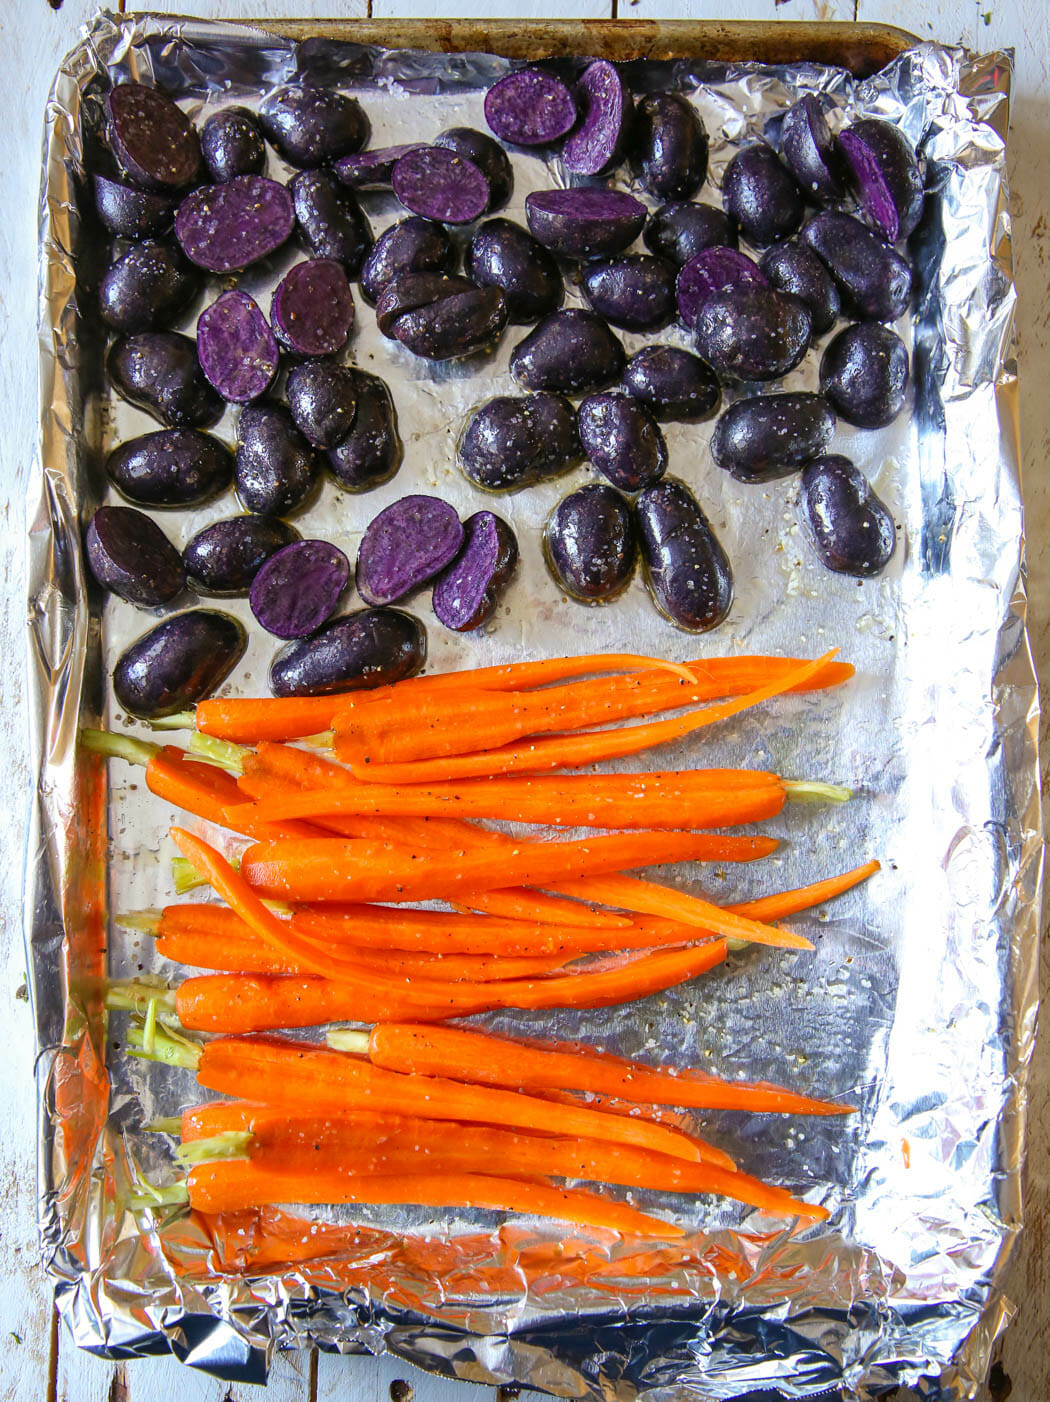 prepped veggies for roasting